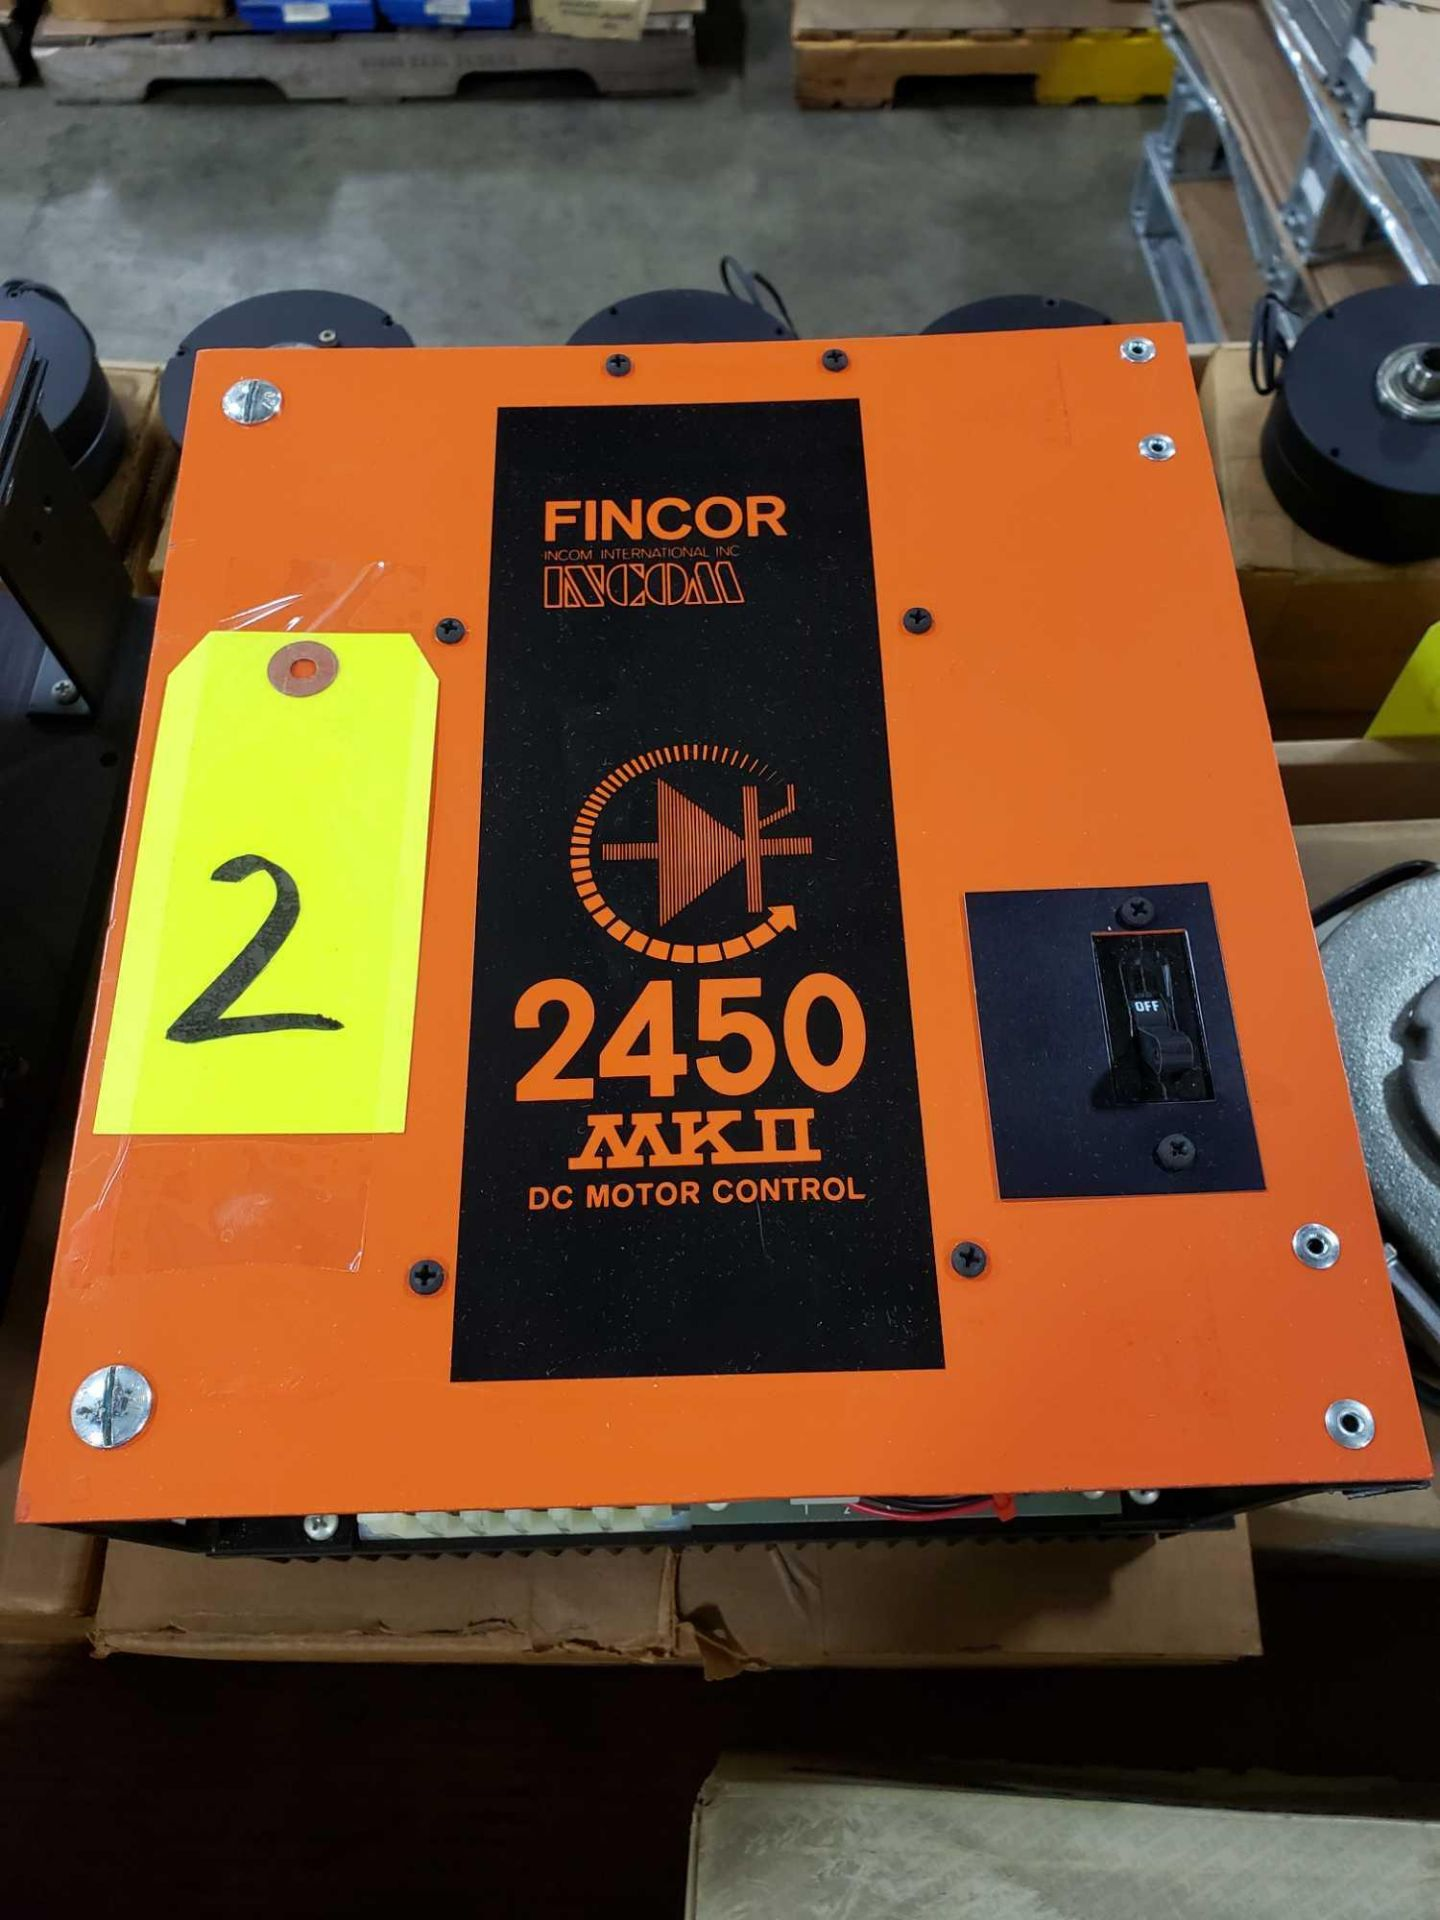 Lot 2 - Fincor DC motor control model 2450 MKII part number 2453, 5hp 230v. New in box.